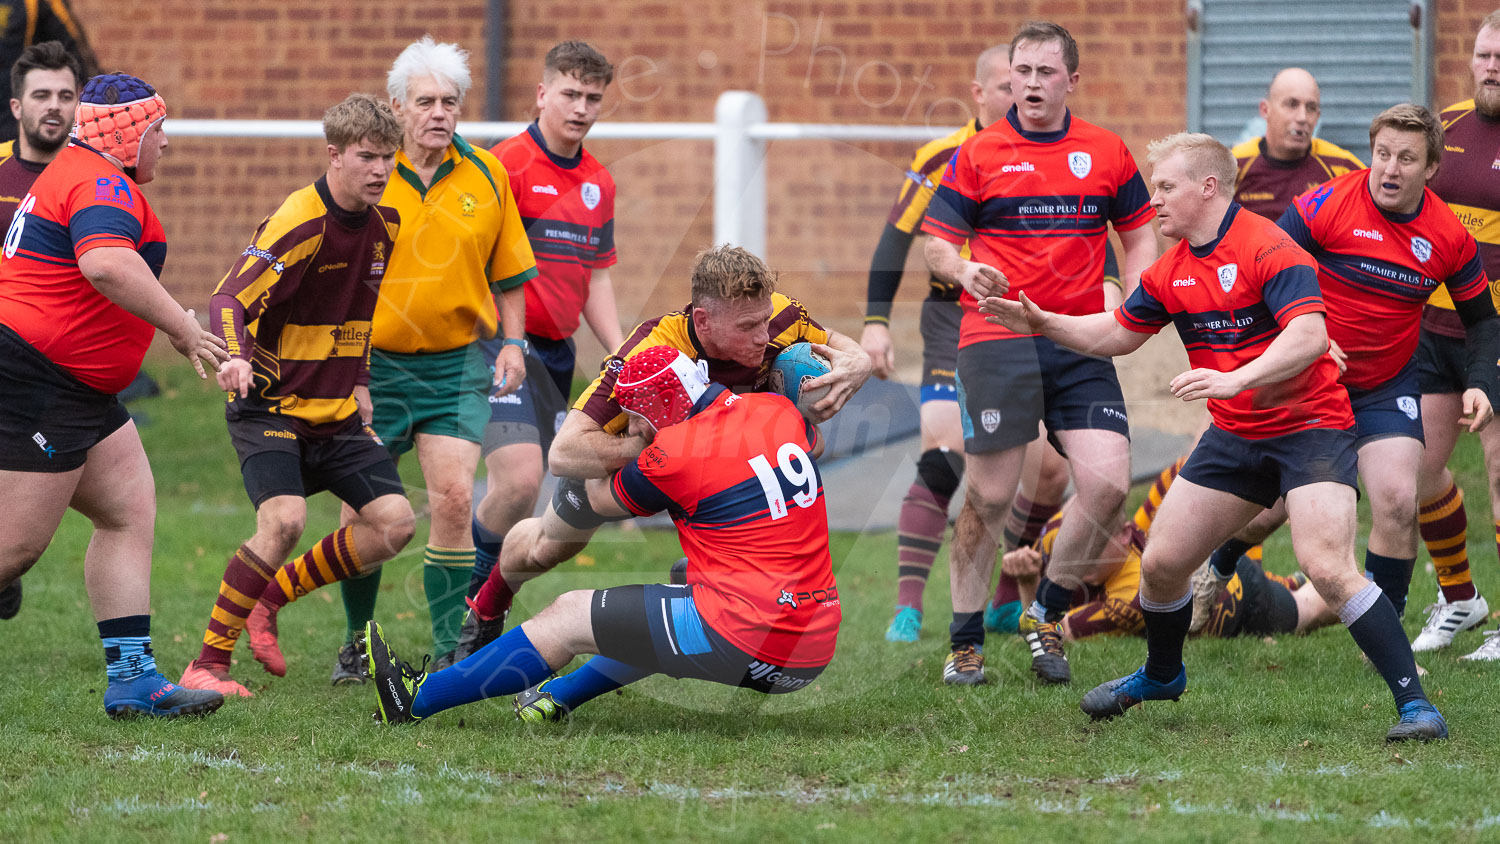 20181027 Amp Extras vs St Neots 2nd XV #2382